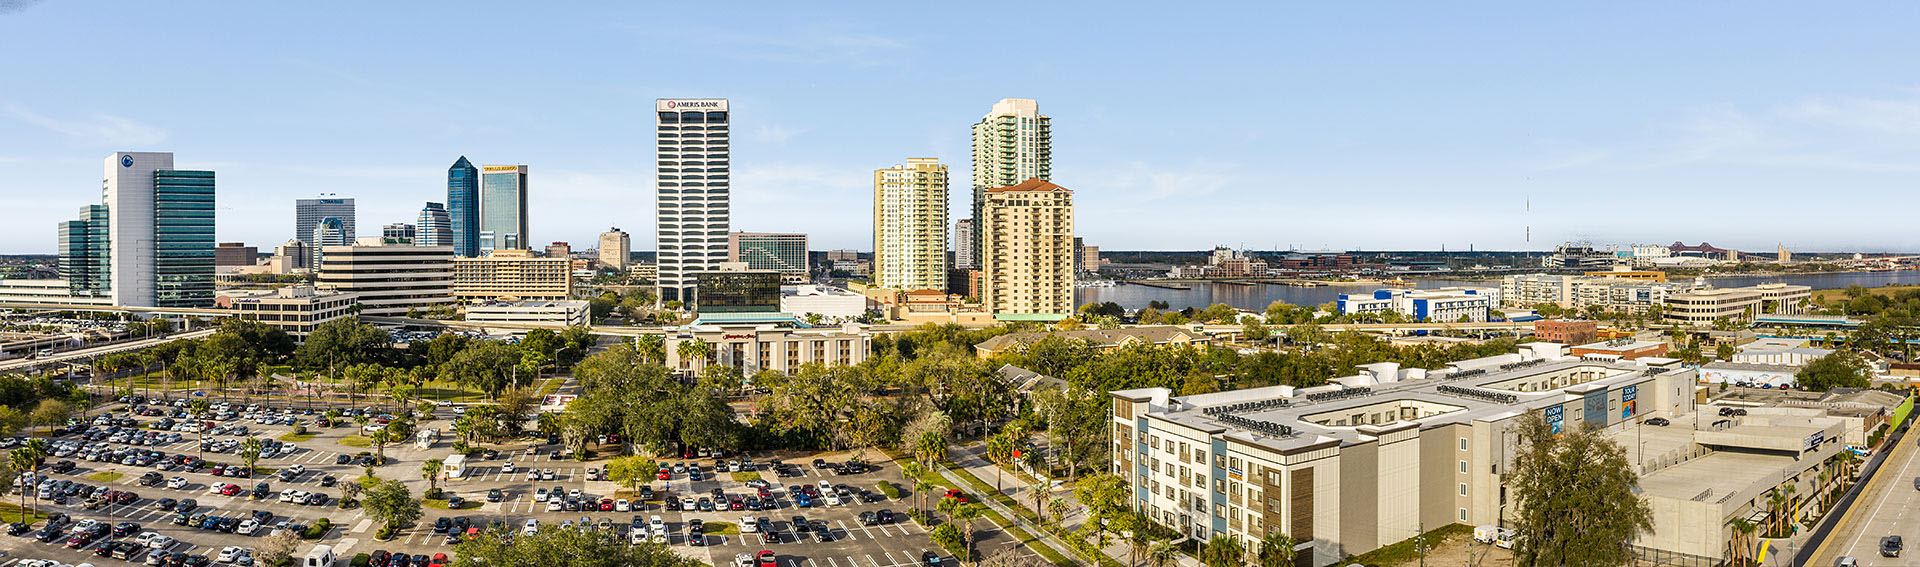 view of Southbank Downtown Jacksonville with SoBa Apartments in the foreground